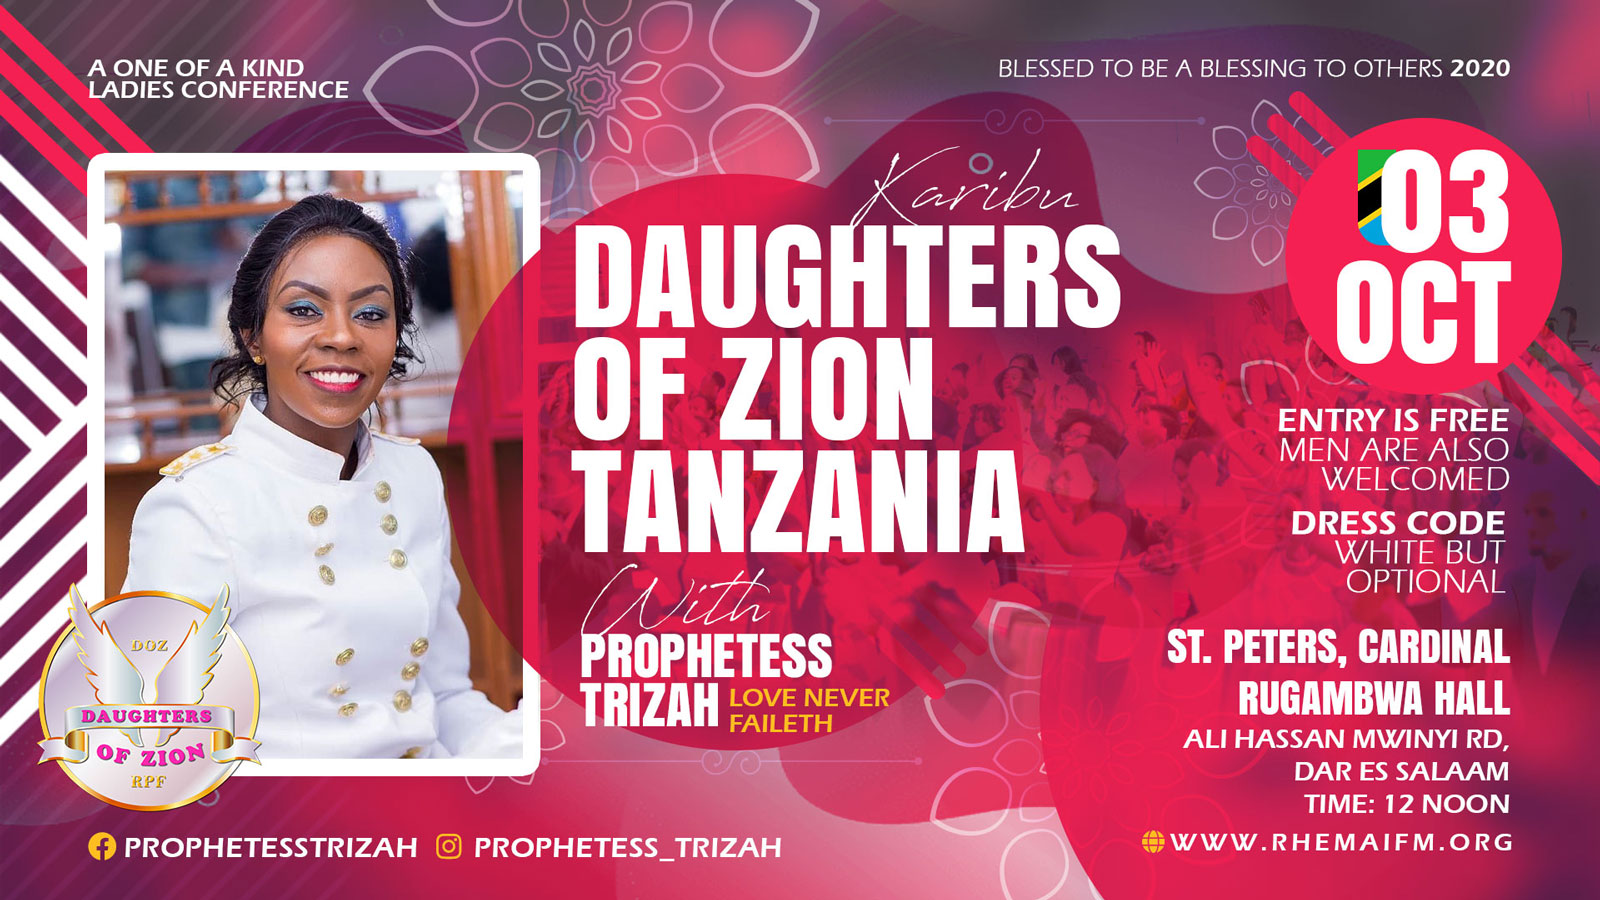 Daughters of Zion Event - Tanzania